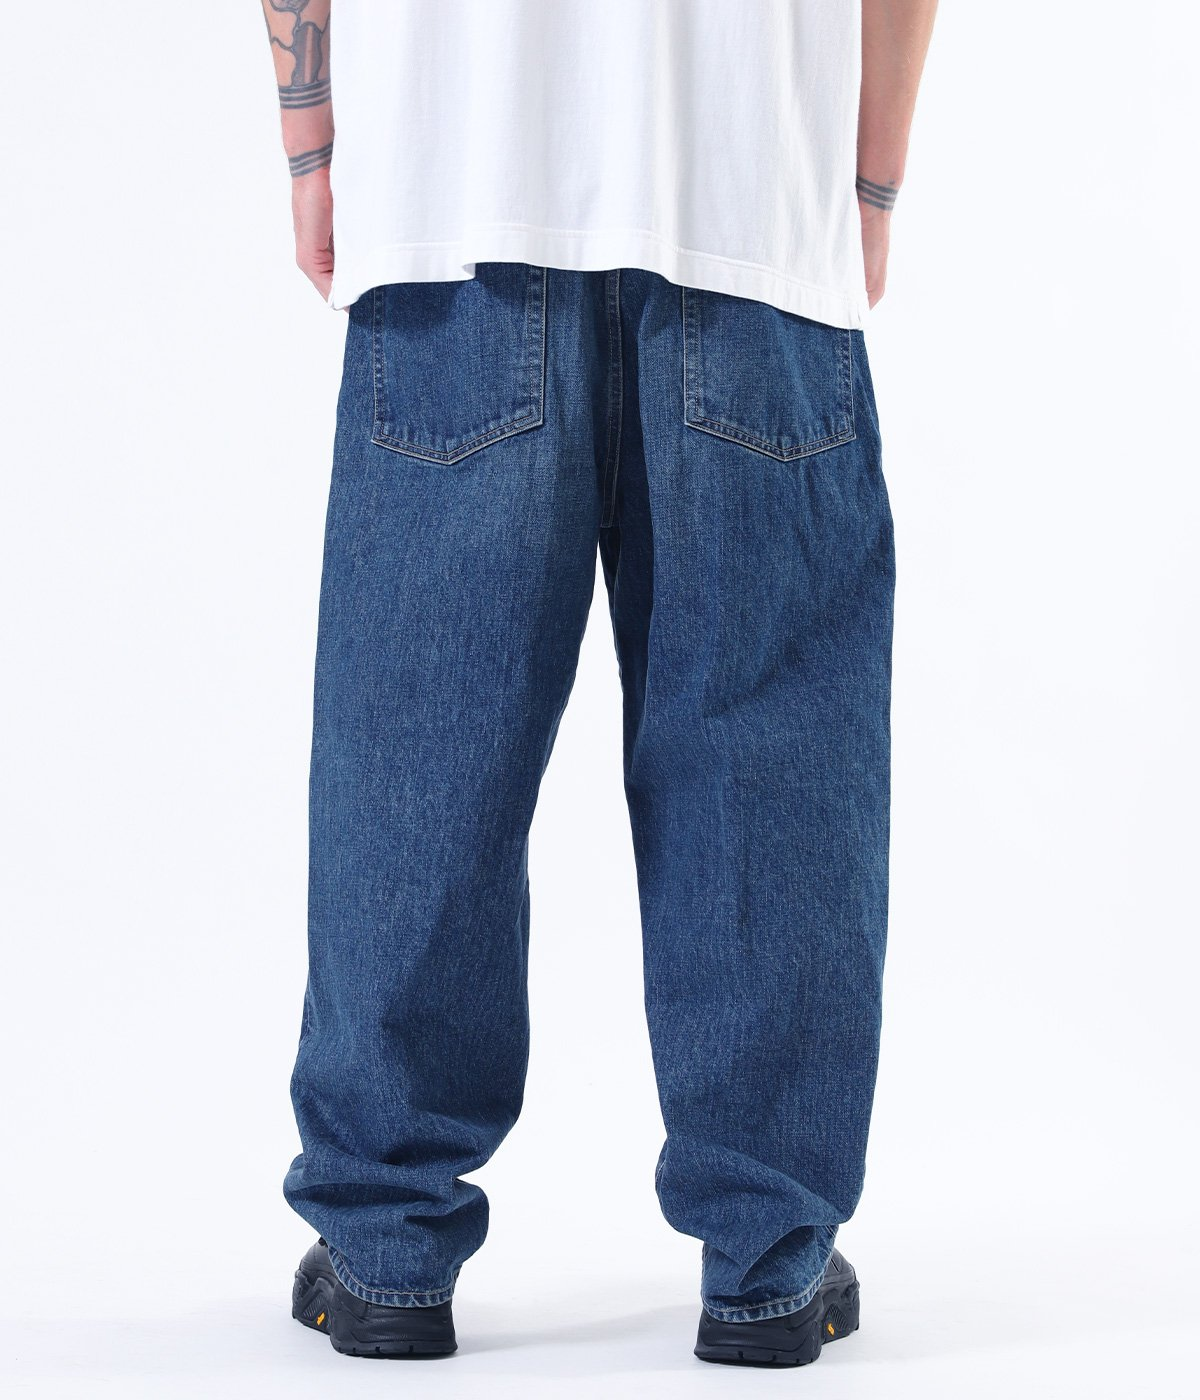 14oz. DENIM 5POCKET WIDE PANTS AGED MODEL